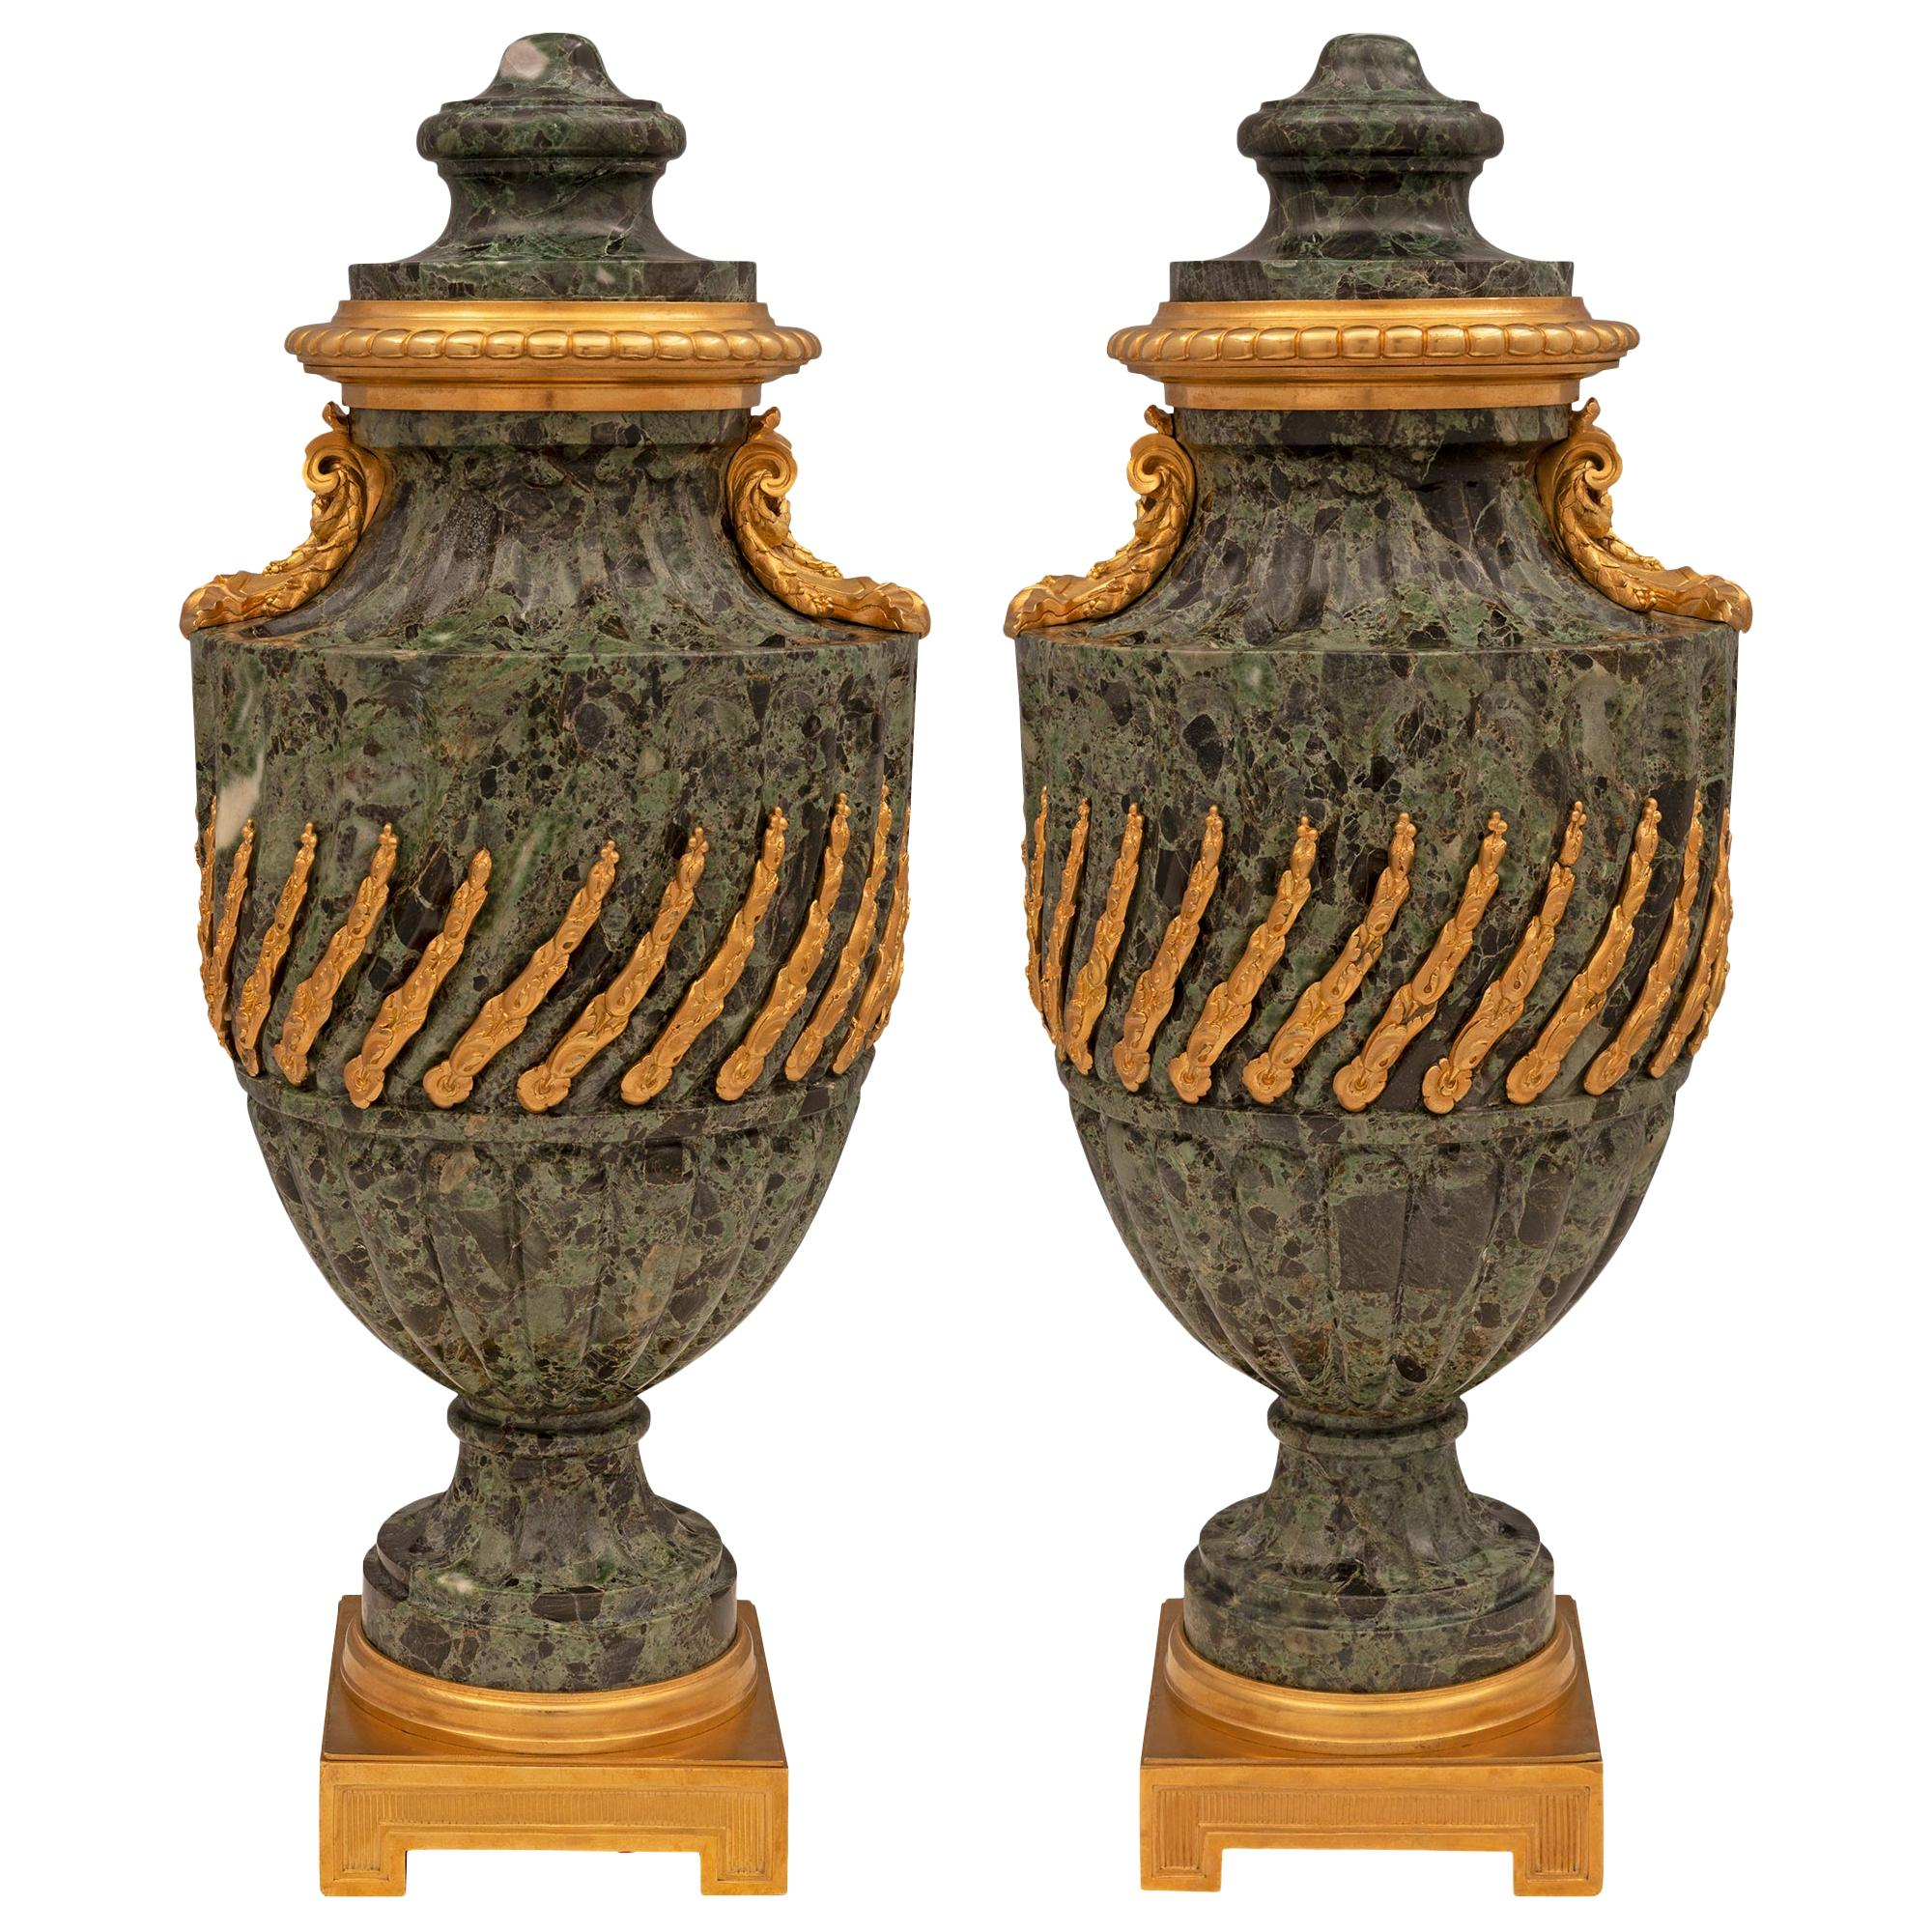 Pair of French 19th Century Louis XVI Style Marble and Ormolu Urns